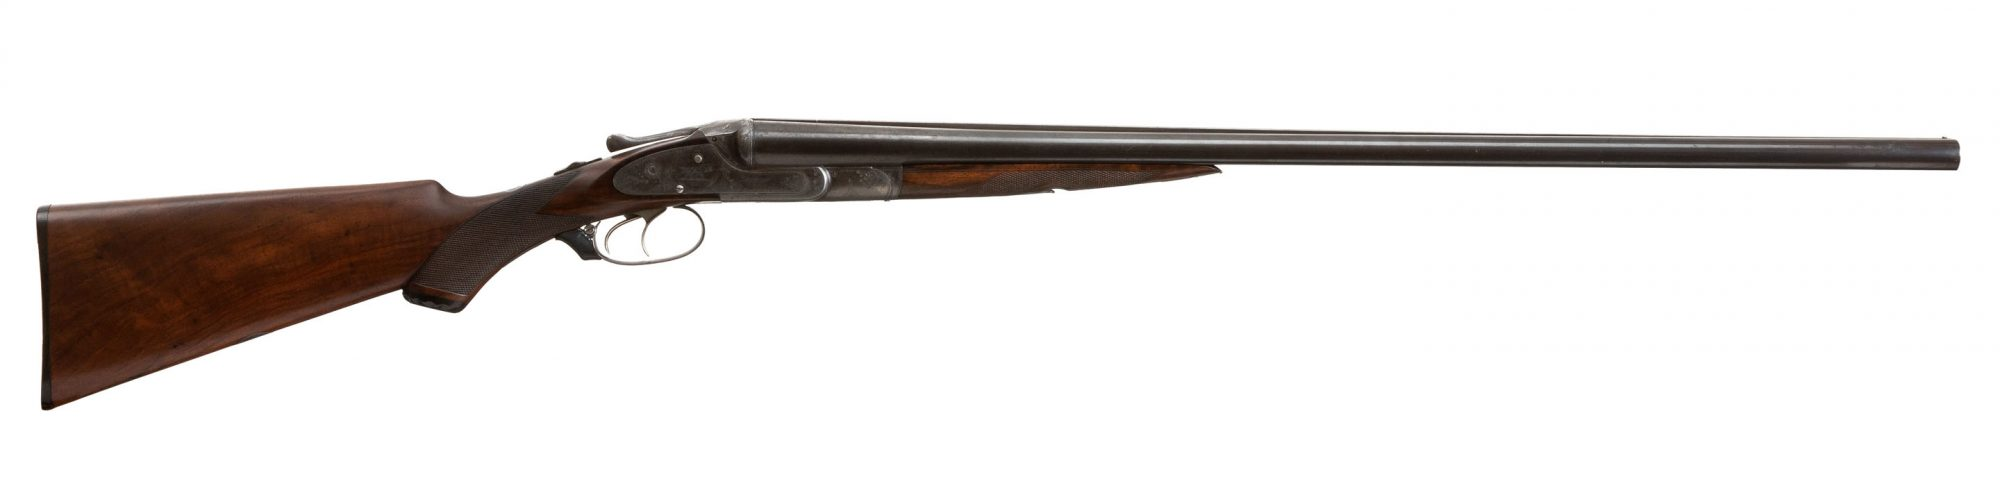 Photo of a pre-owned Lefever EE grade 16 gauge side by side shotgun, for sale as-is by Turnbull Restoration of Bloomfield, NY